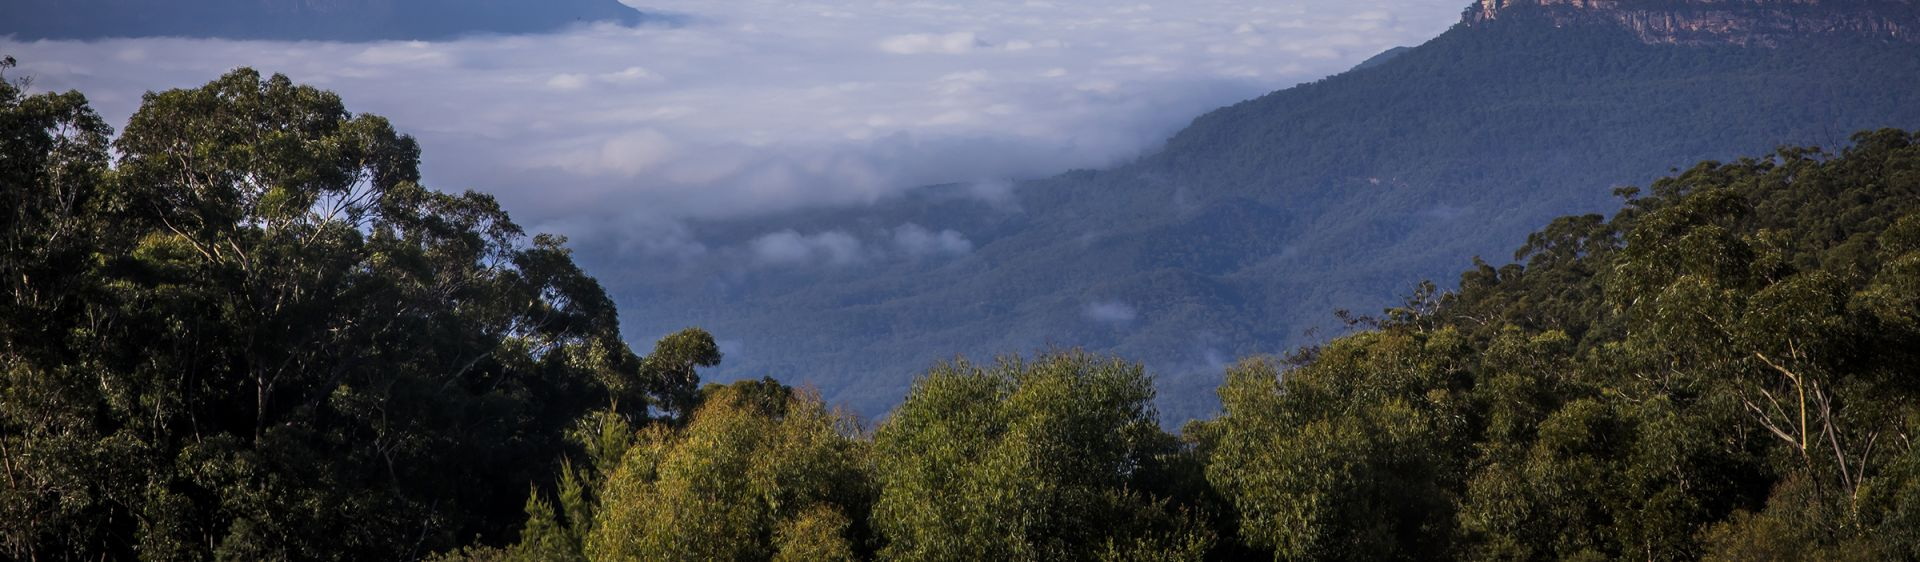 Scenic views across Jamison Valley in the Blue Mountains National Park, Leura